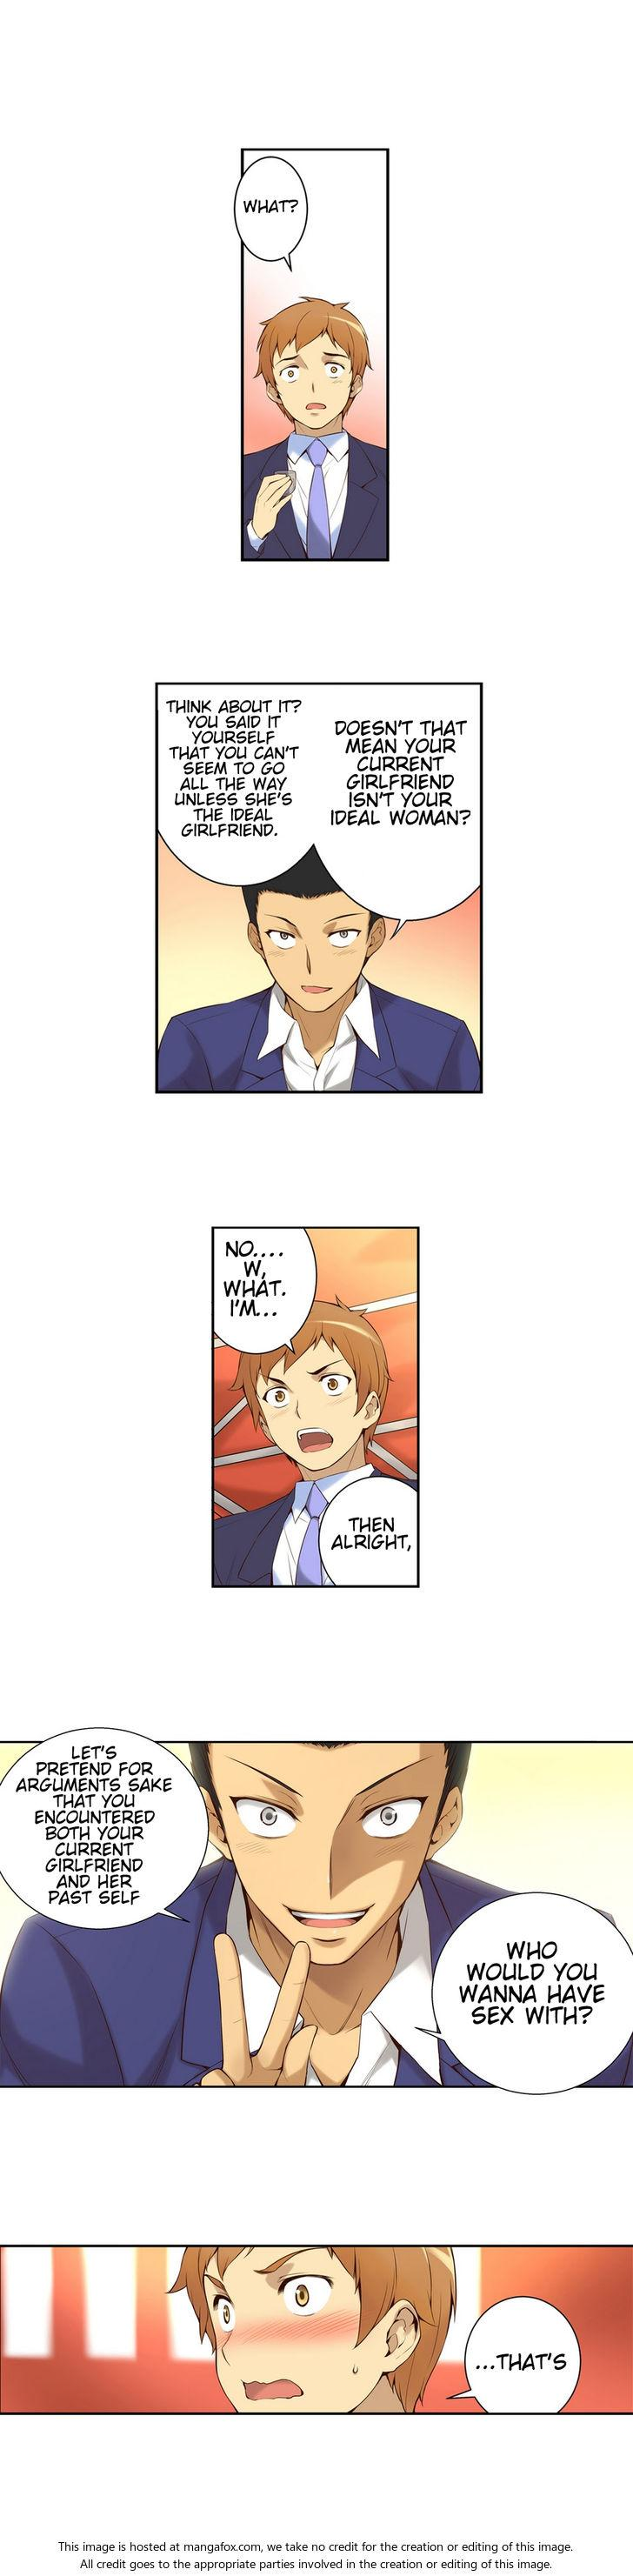 [Donggul Gom] She is Young (English) Part 1/2 20